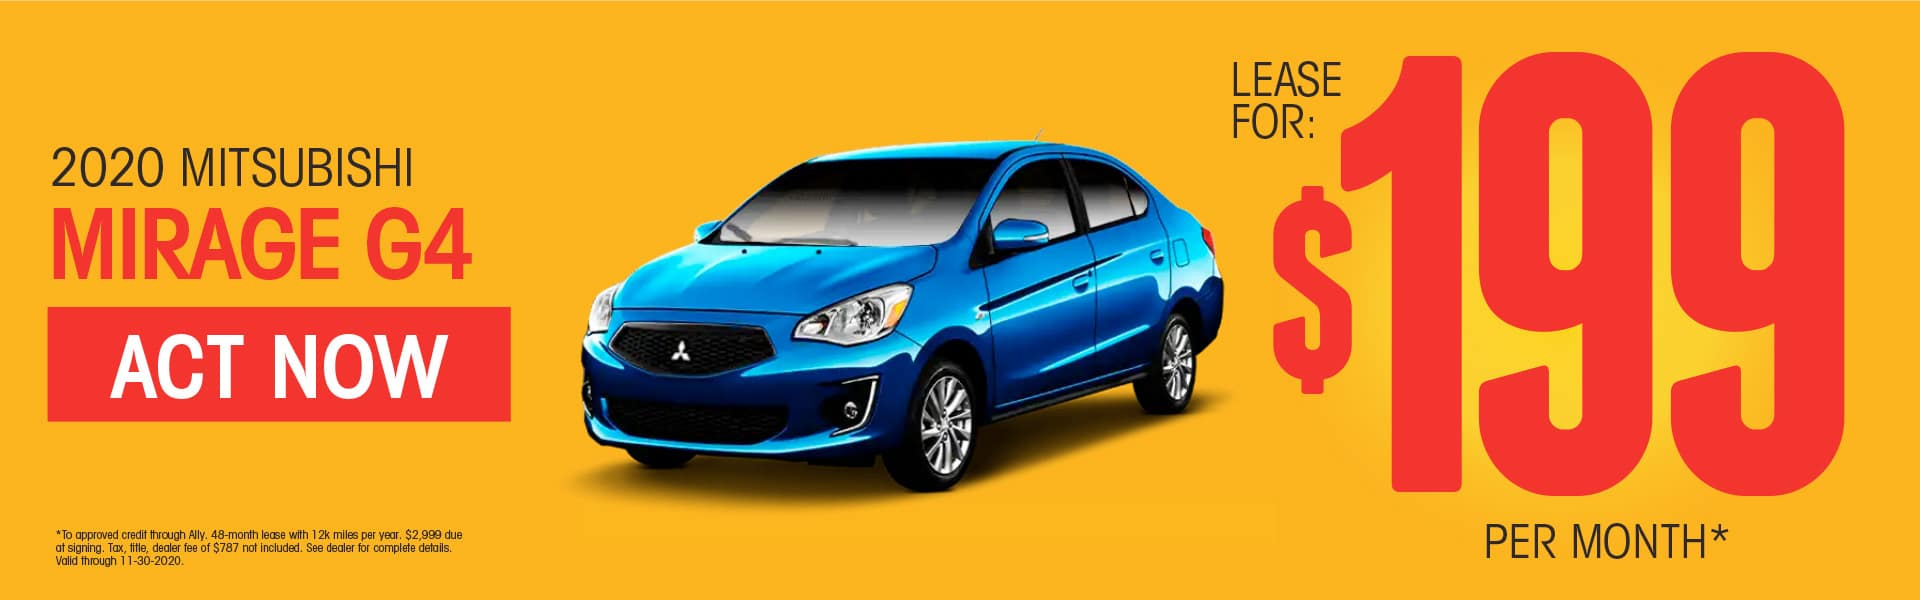 2020 Mitsubishi Mirage G4 Lease for $199 per month* SHOP NOW